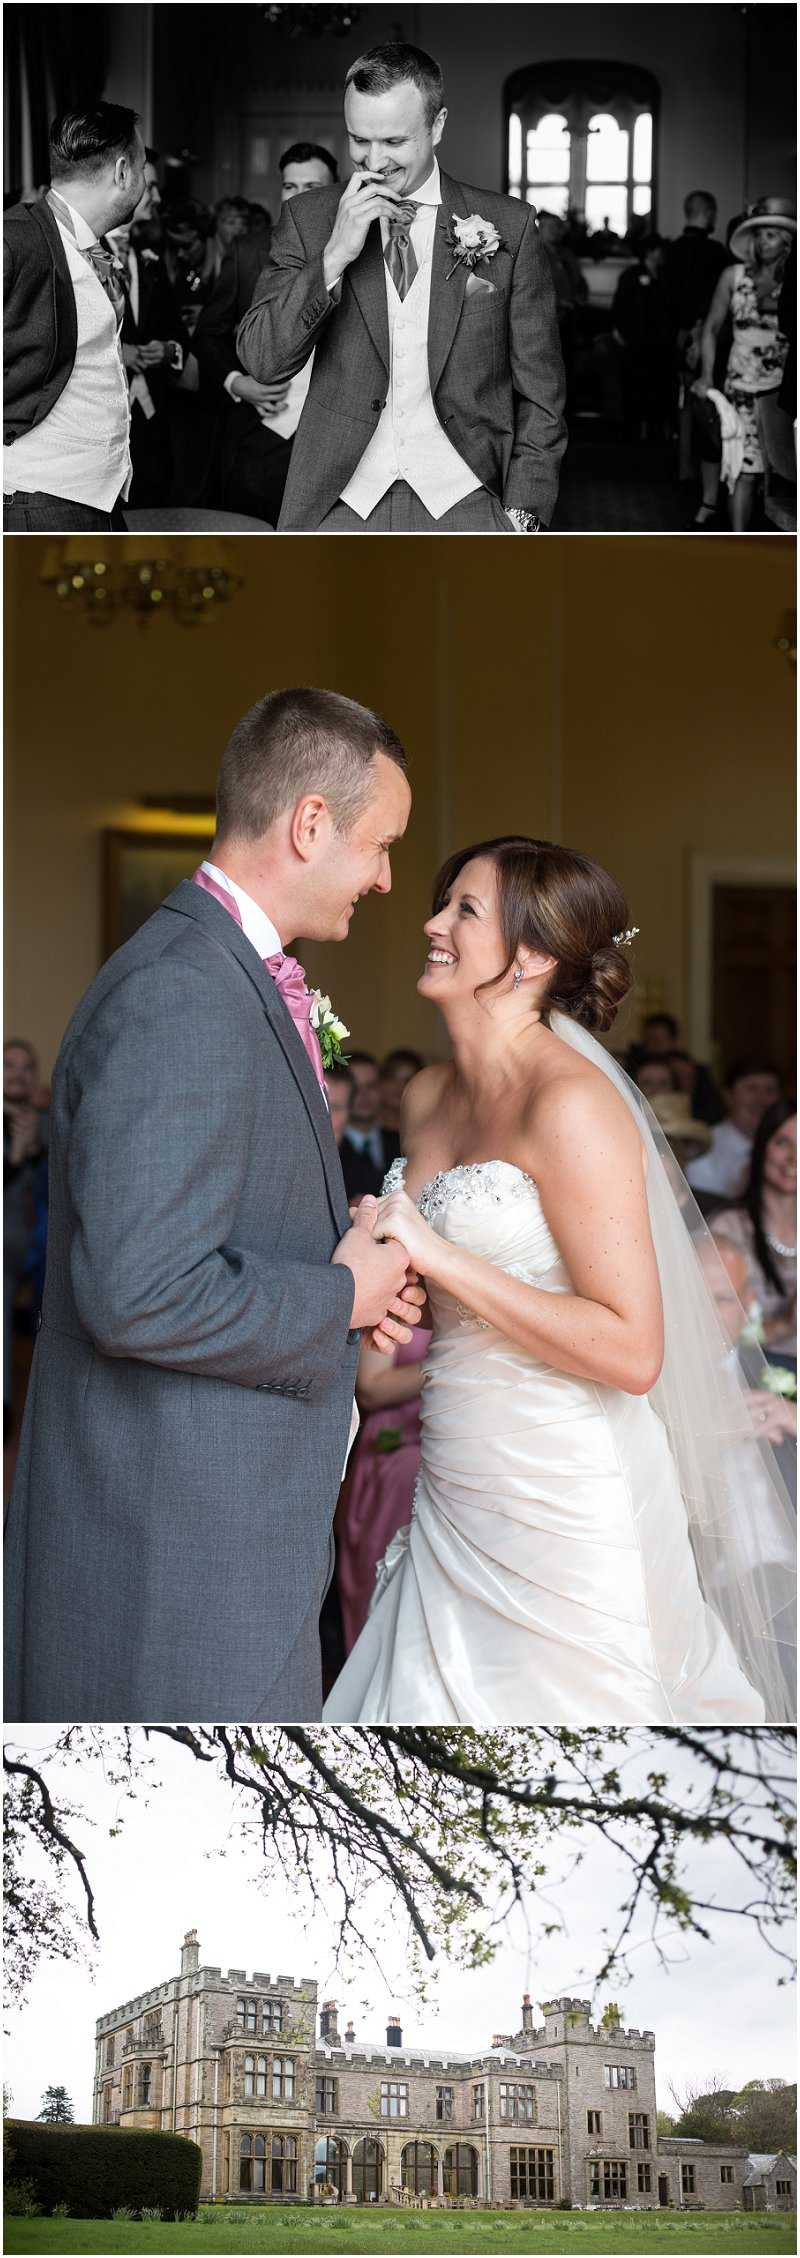 Bride and Groom wedding ceremony at Armathwaite Hall in Cumbria Photography